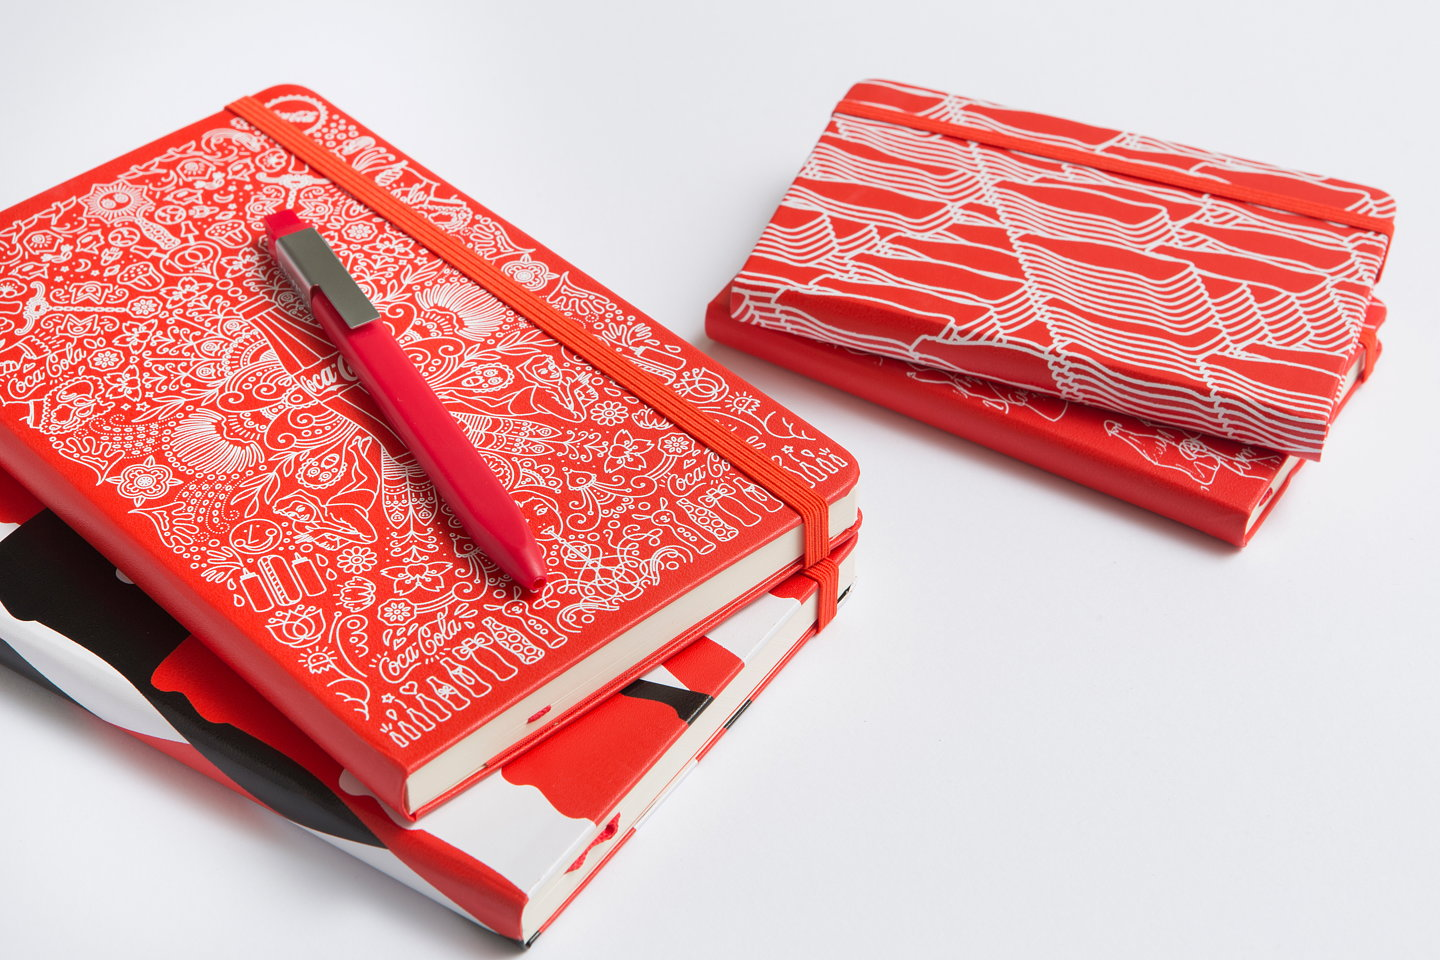 Moleskine_100th_Anniversary_of_Coca_Cola_Bottle_09_gallery.jpg